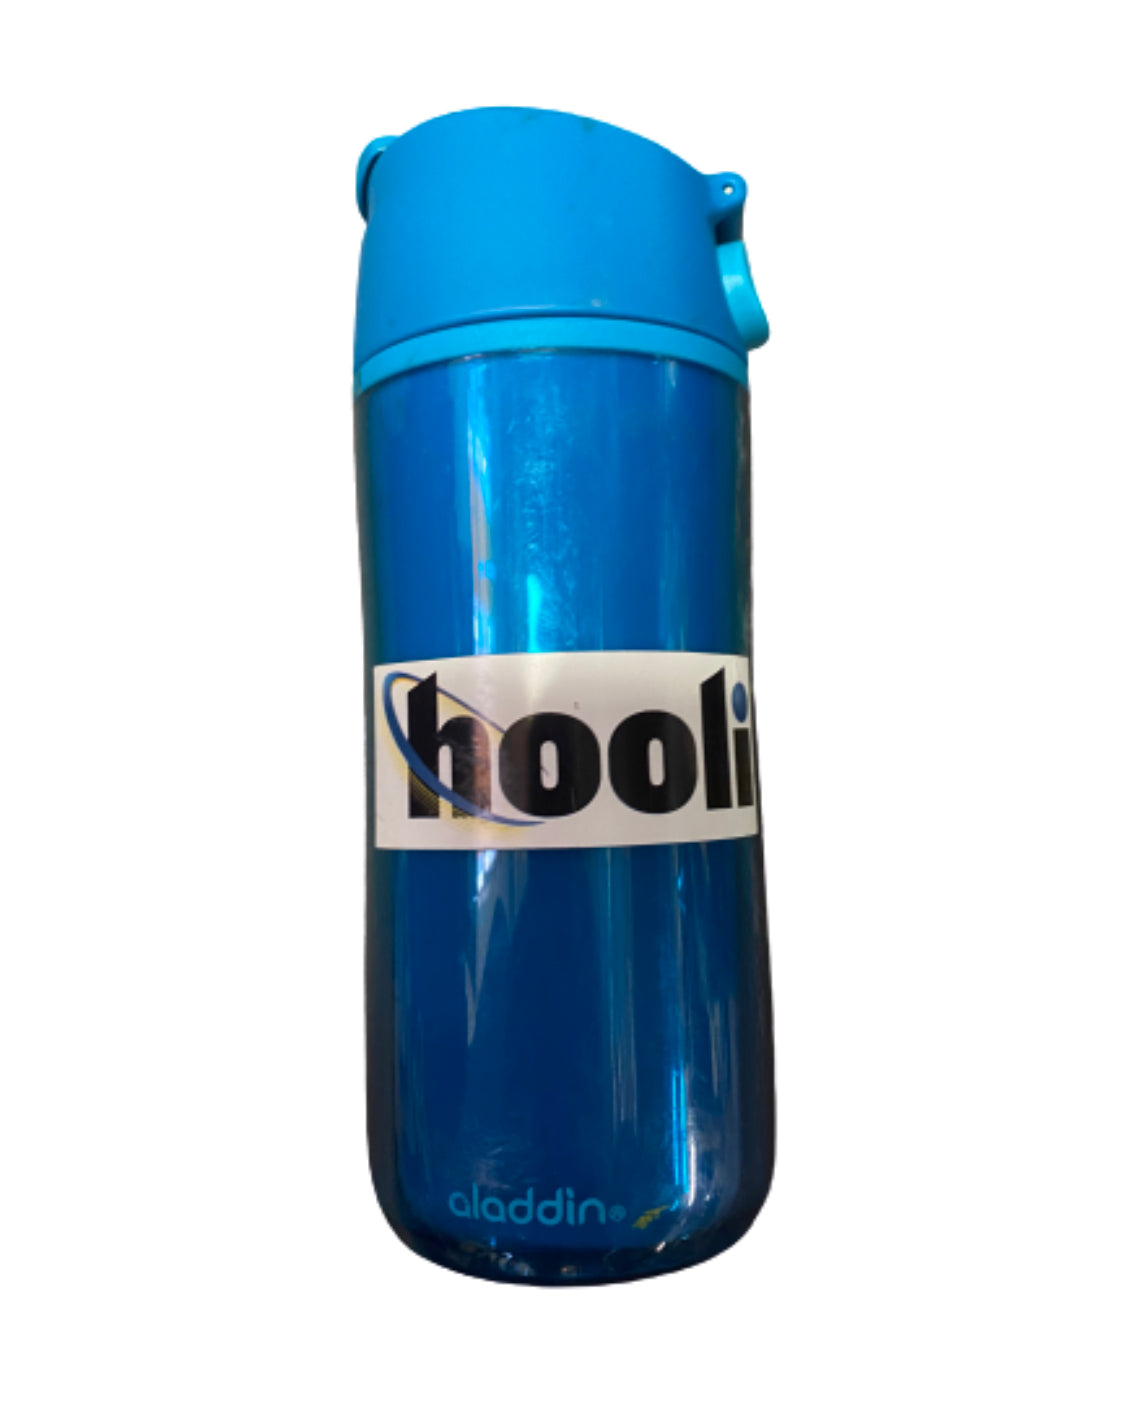 SILICON VALLEY: Hooli Water Bottle